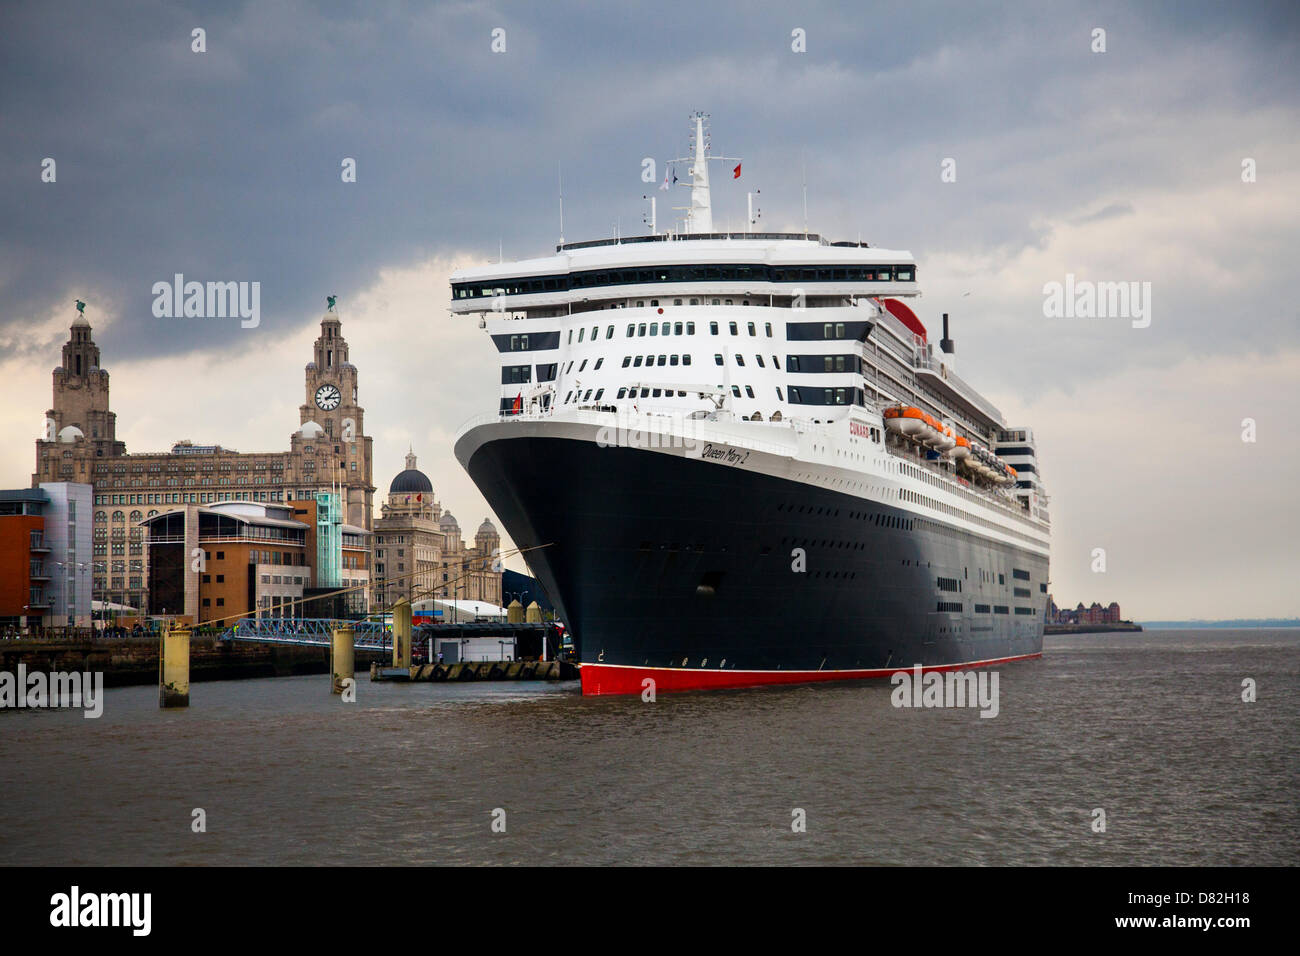 Liverpool, UK 17th May, 2013. The Big Cruise Liner Terminal where the Passenger ship registered in Bermuda Liner - Stock Image